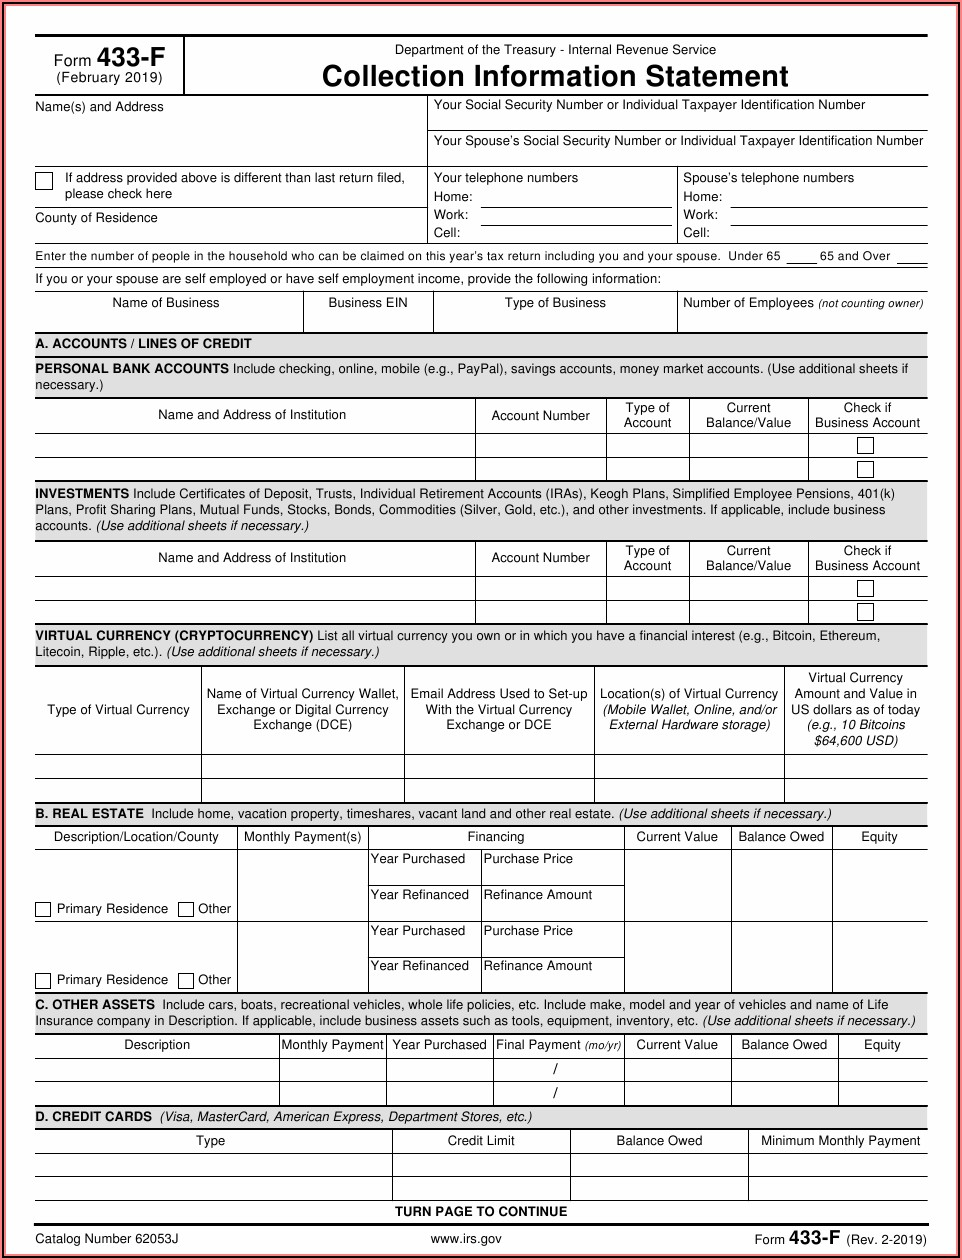 Irs Form 433 F Download